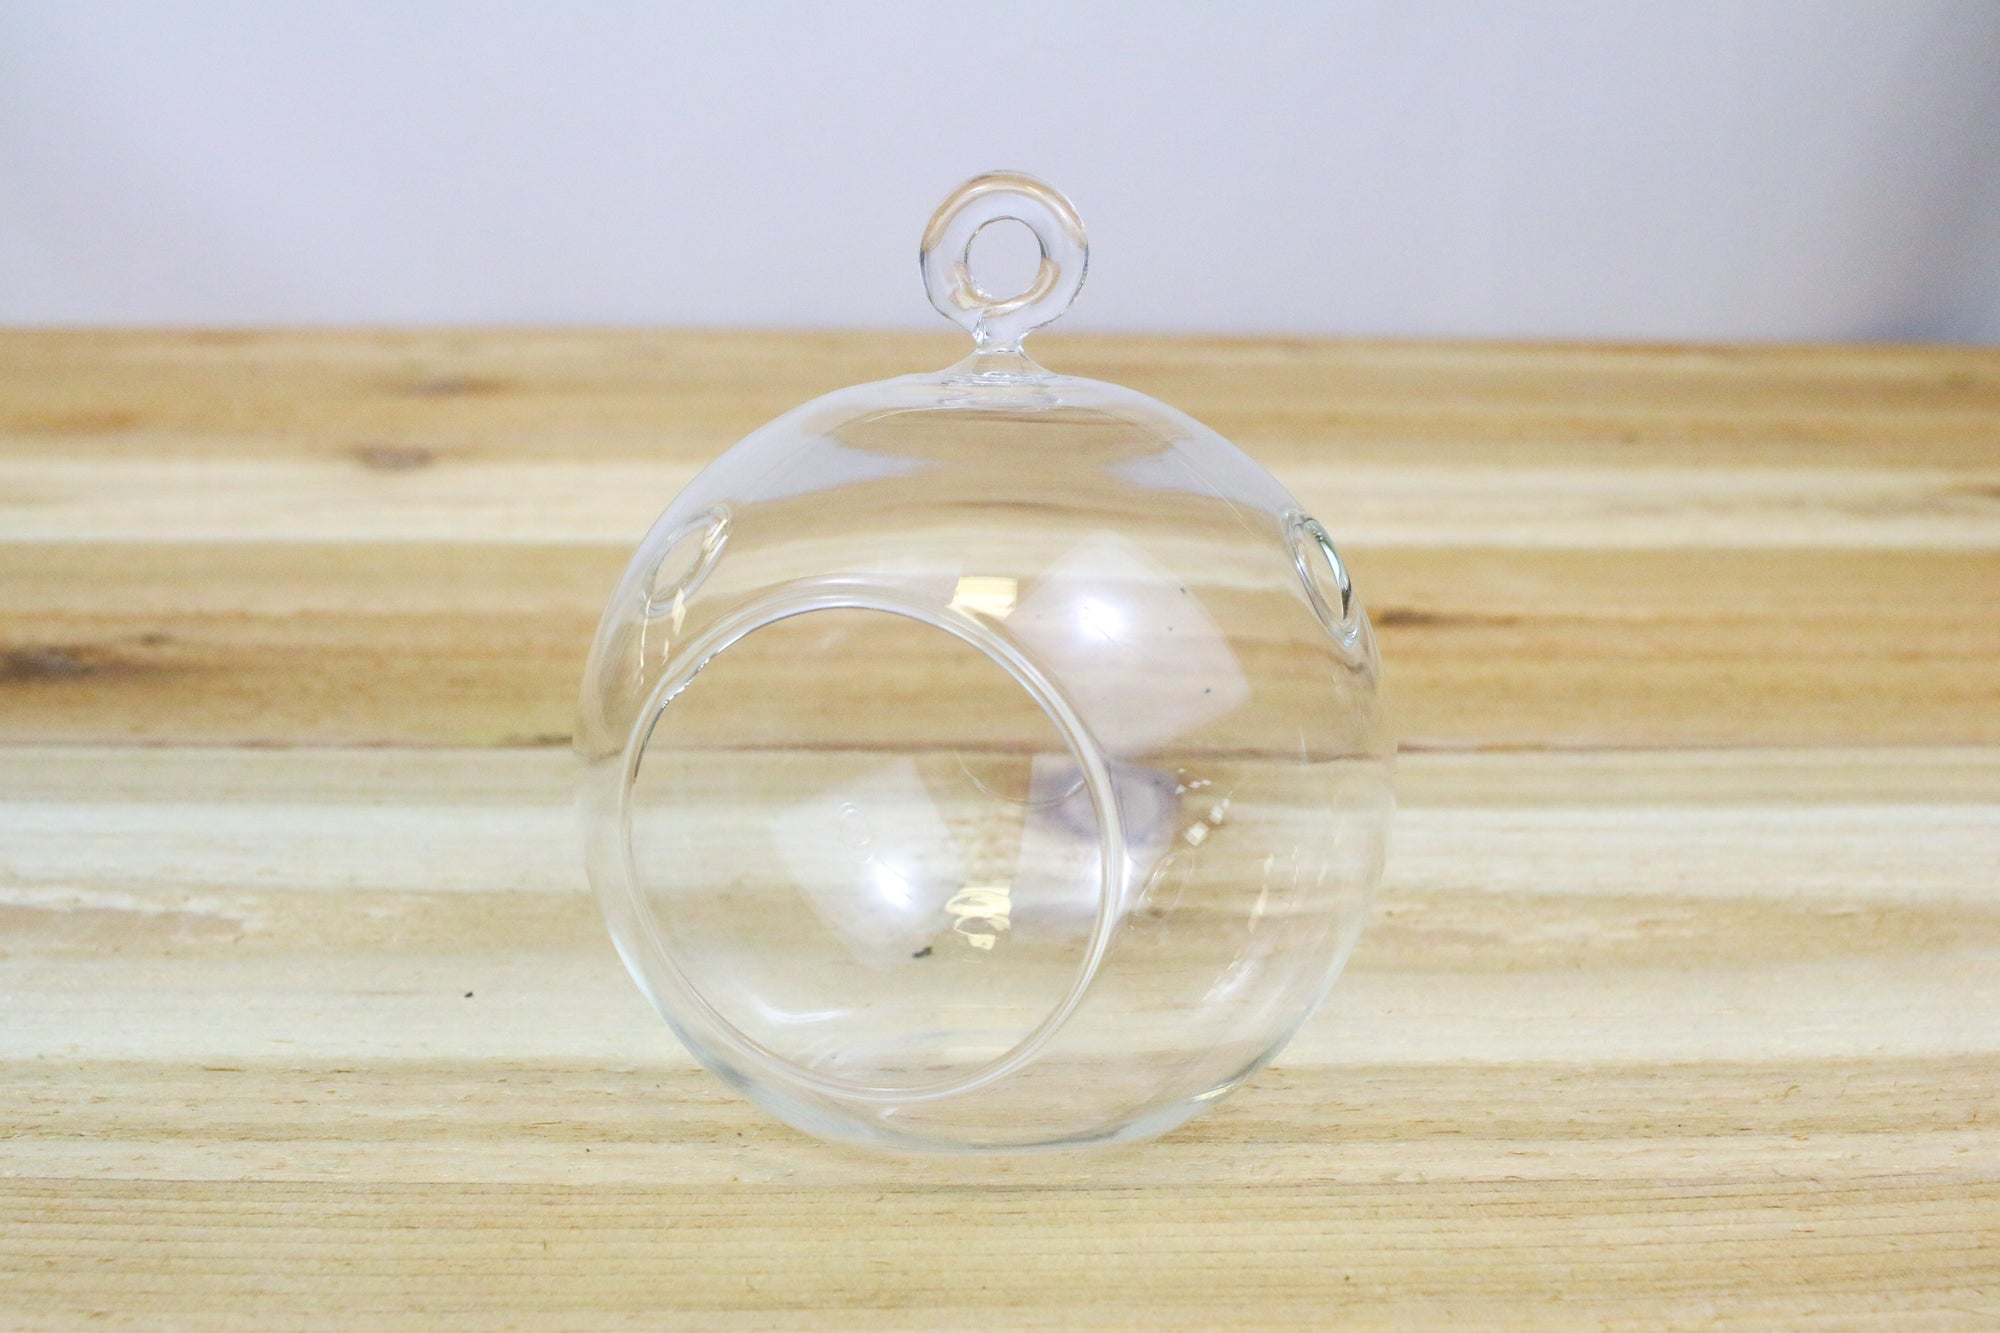 Wholesale: Flat Bottom Hanging Globe Terrariums [Min Order 12]